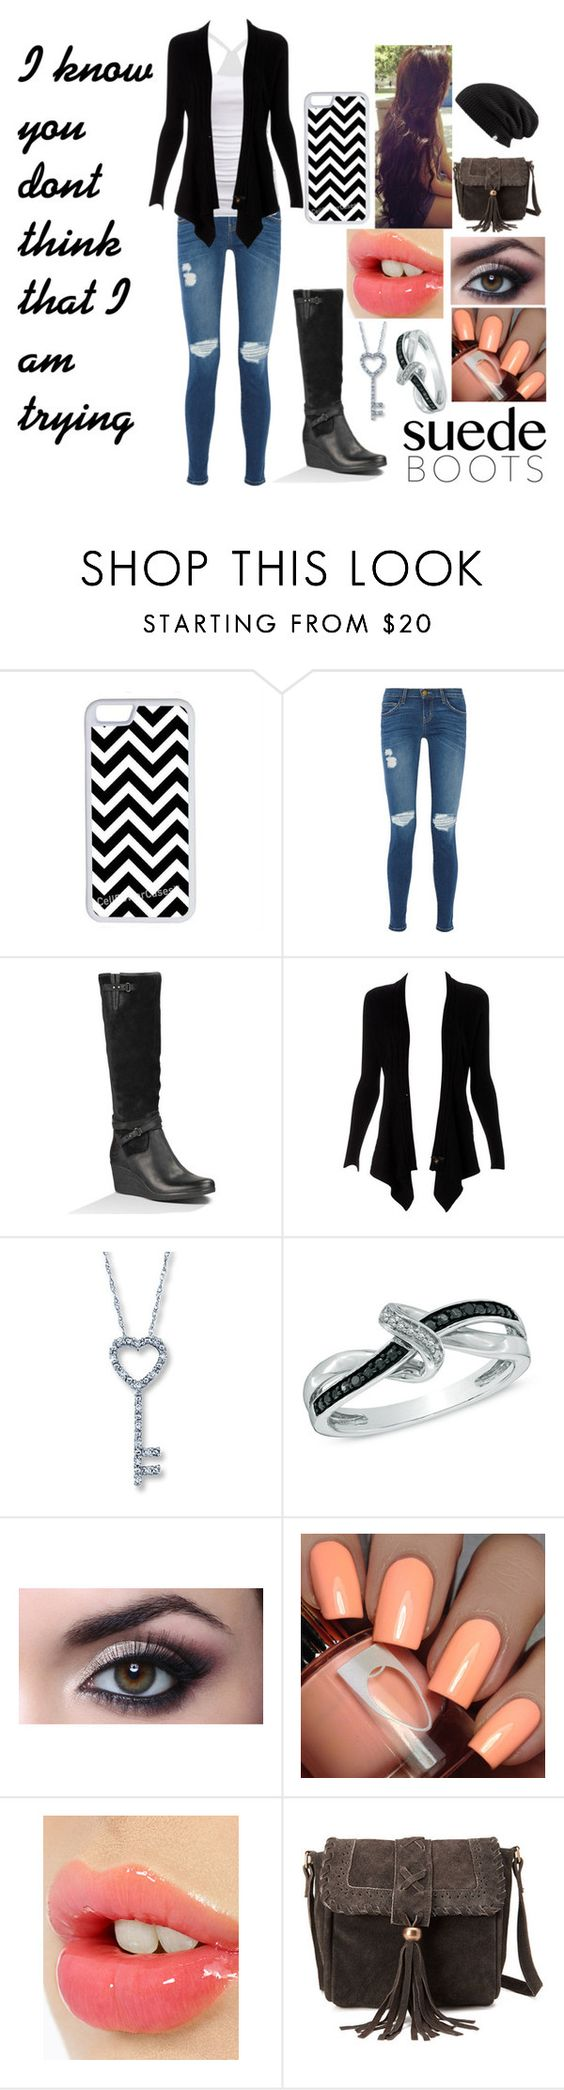 """""""Fall For You"""" by beargirl50 ❤ liked on Polyvore featuring CellPowerCases, Current/Elliott, American Eagle Outfitters, Lipsy, Charlotte Tilbury and Forever 21"""